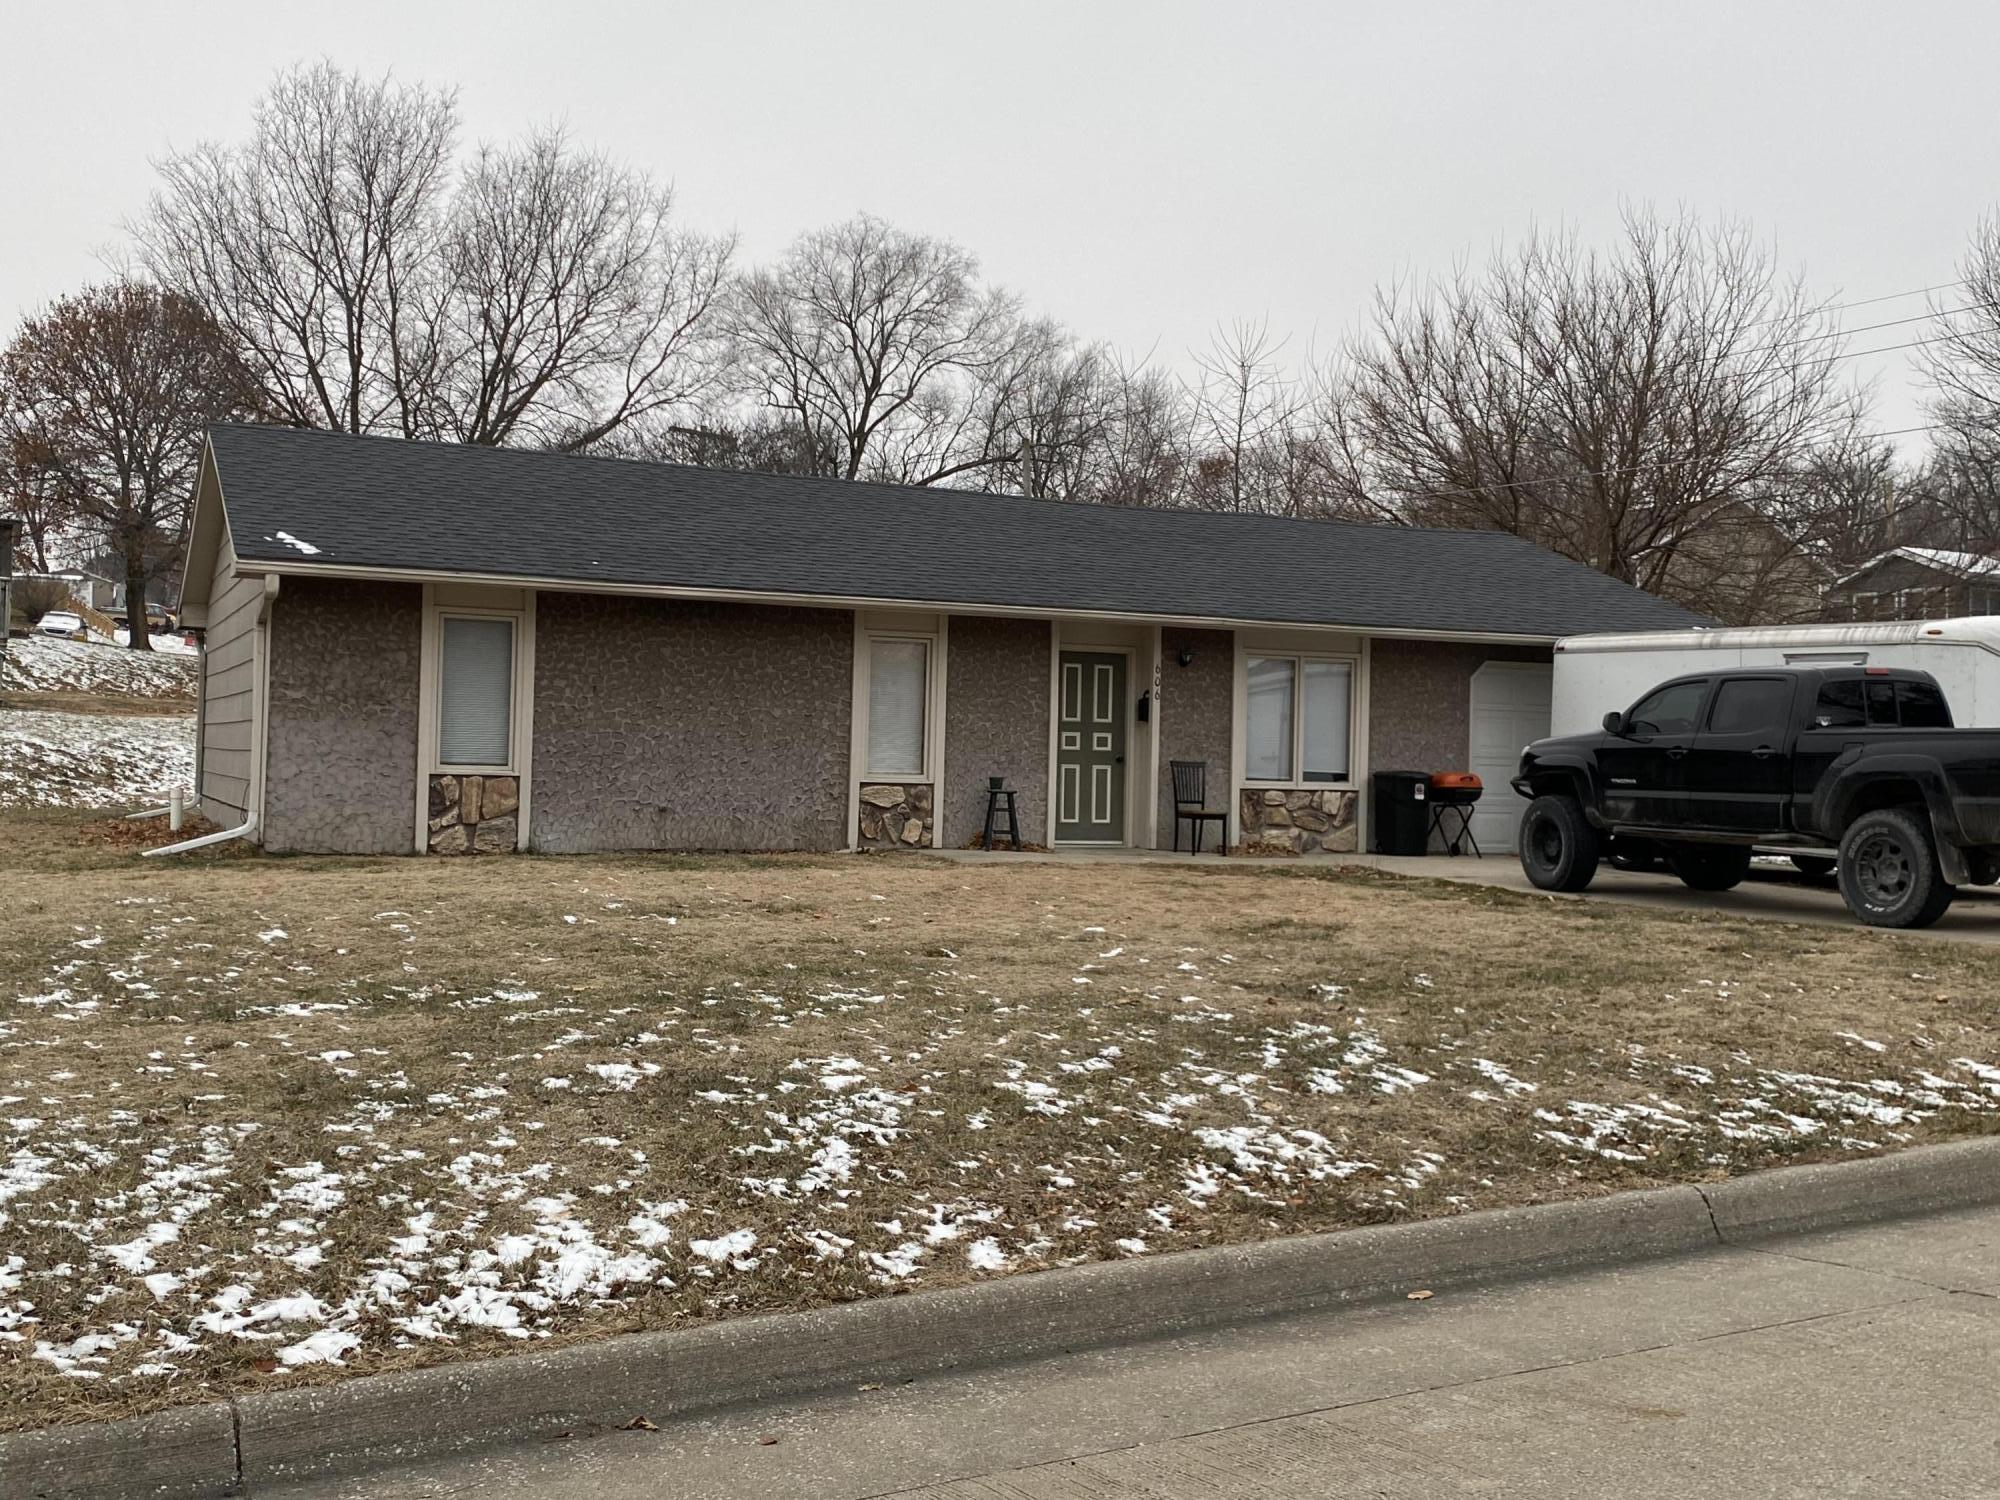 606 PRAIRIE Street, Maryville, Missouri 64468, 3 Bedrooms Bedrooms, ,1.5 BathroomsBathrooms,Residential,PRAIRIE,4928